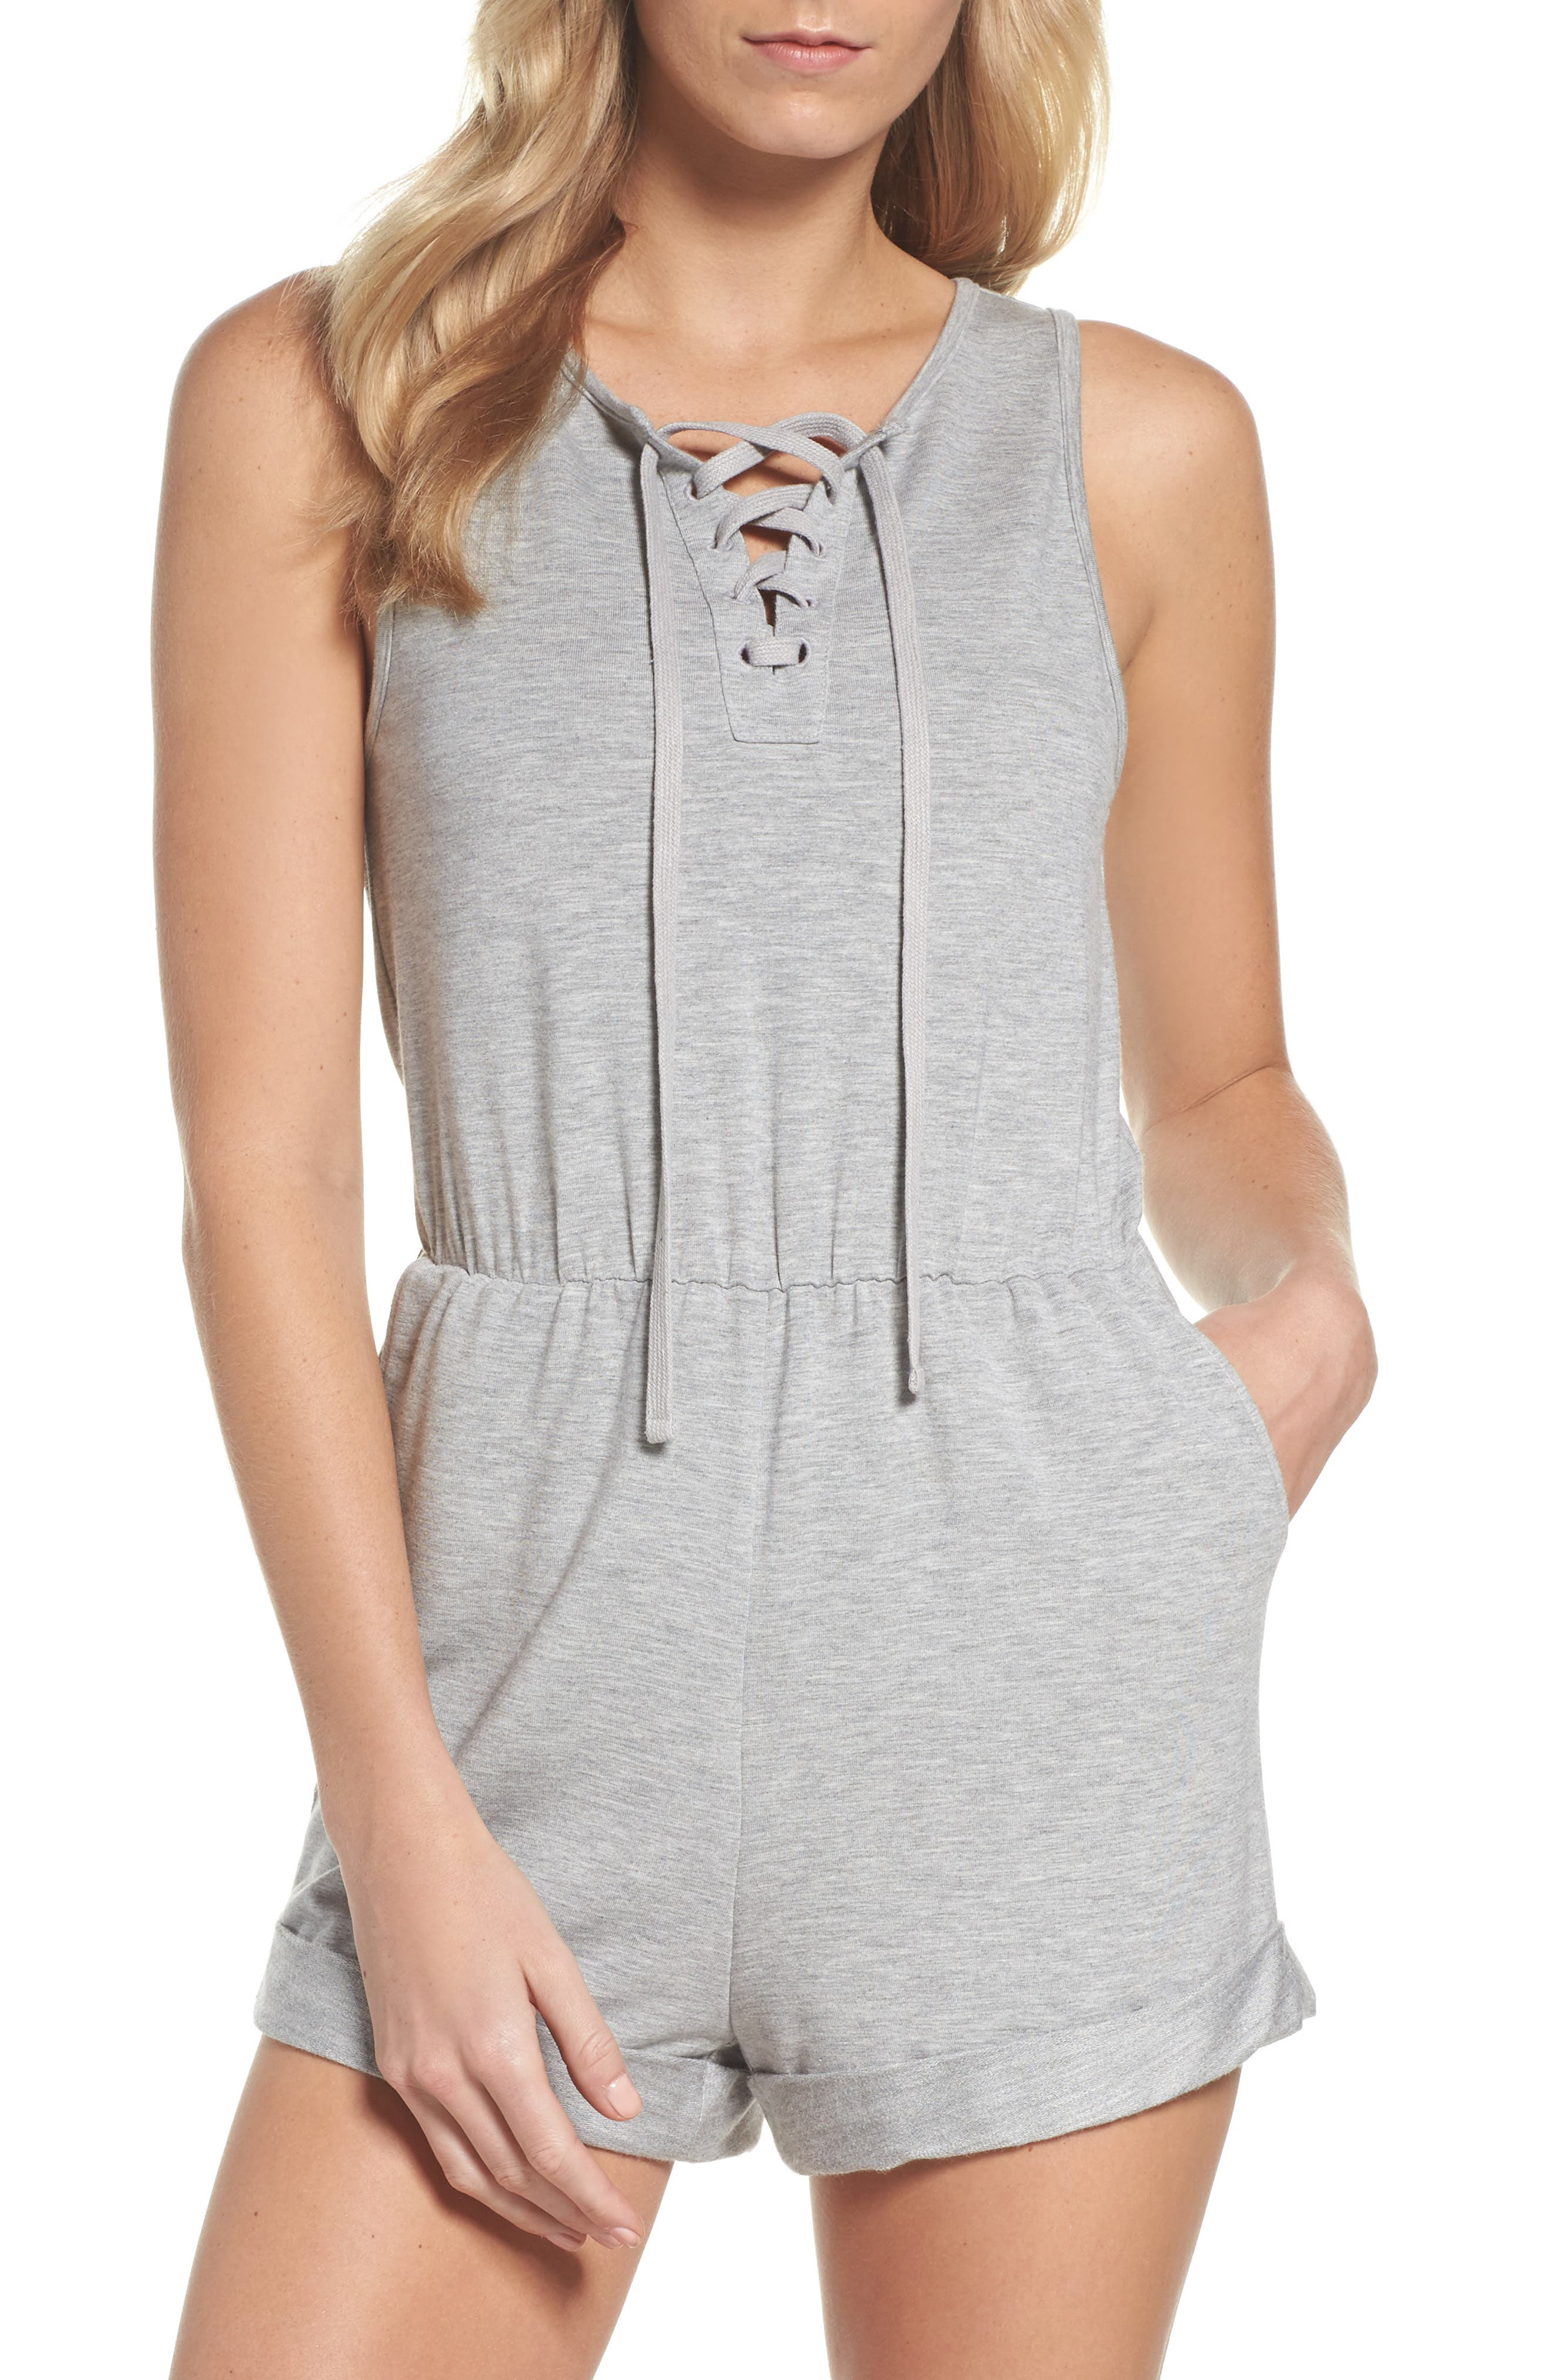 Zuelia French Terry Lounge Romper,                             Main thumbnail 1, color,                             H Grey